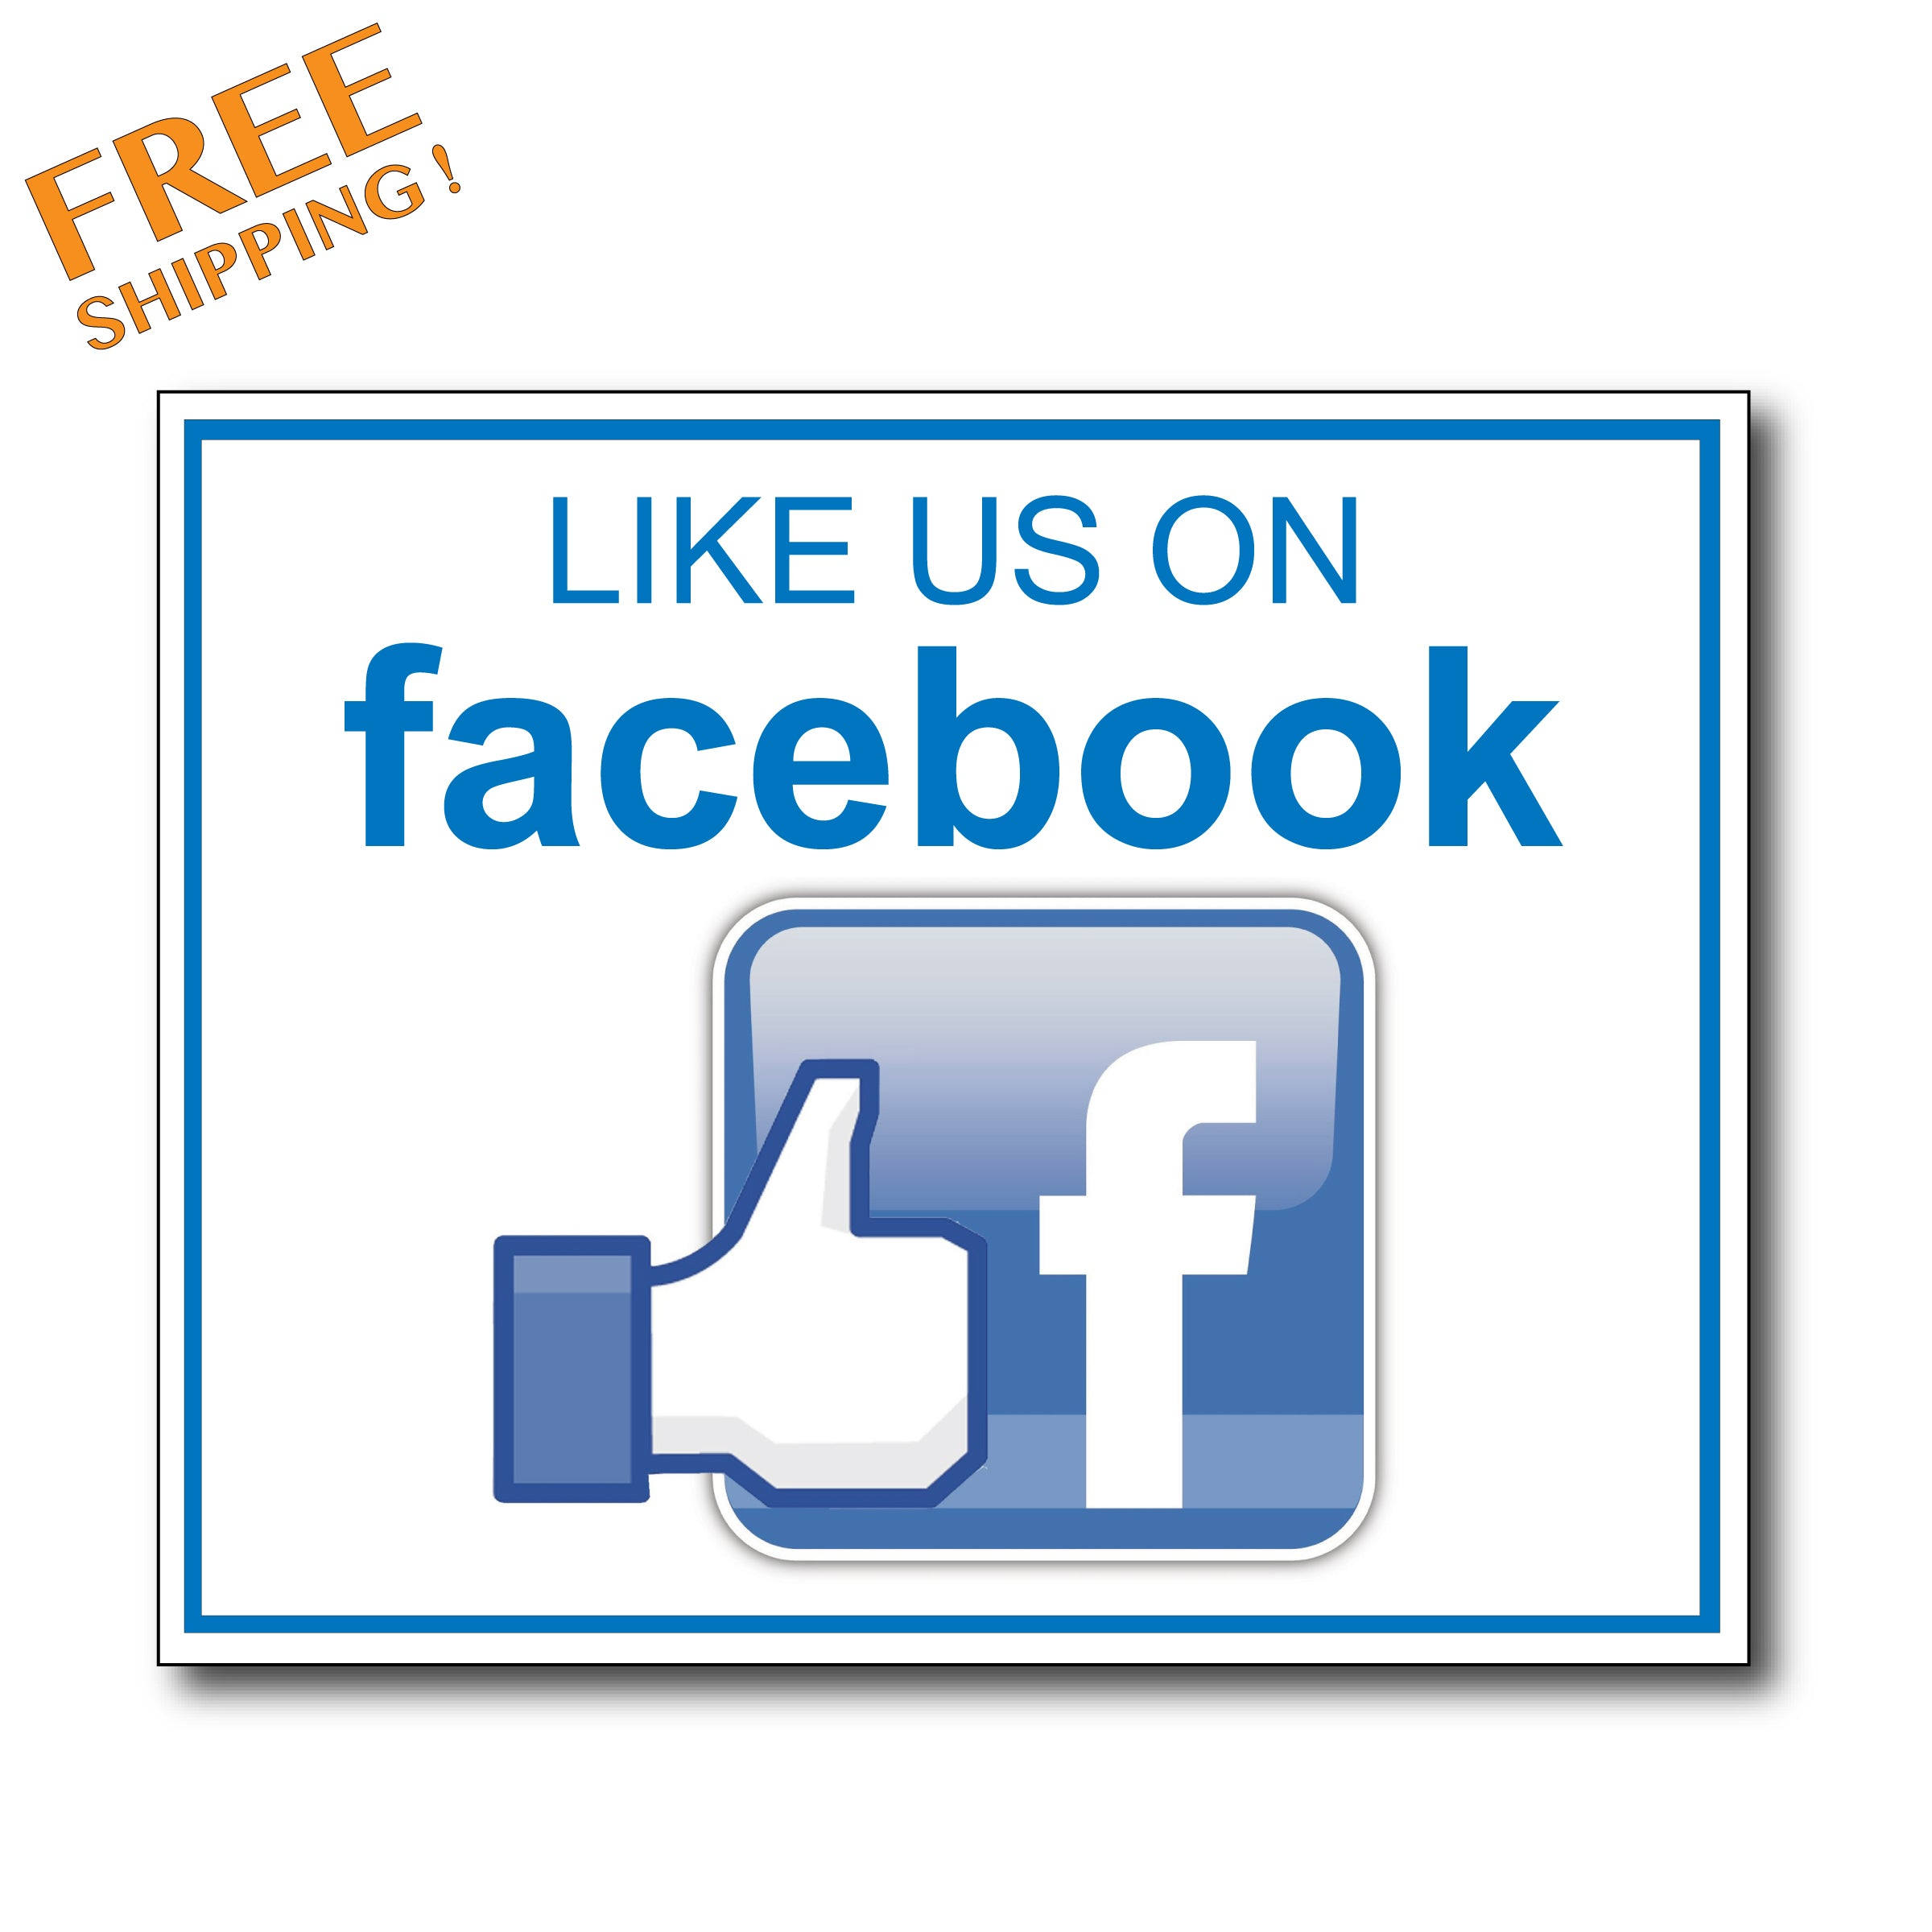 "LIKE US ON FACEBOOK 8"" v1 - Vinyl Stickers Business"